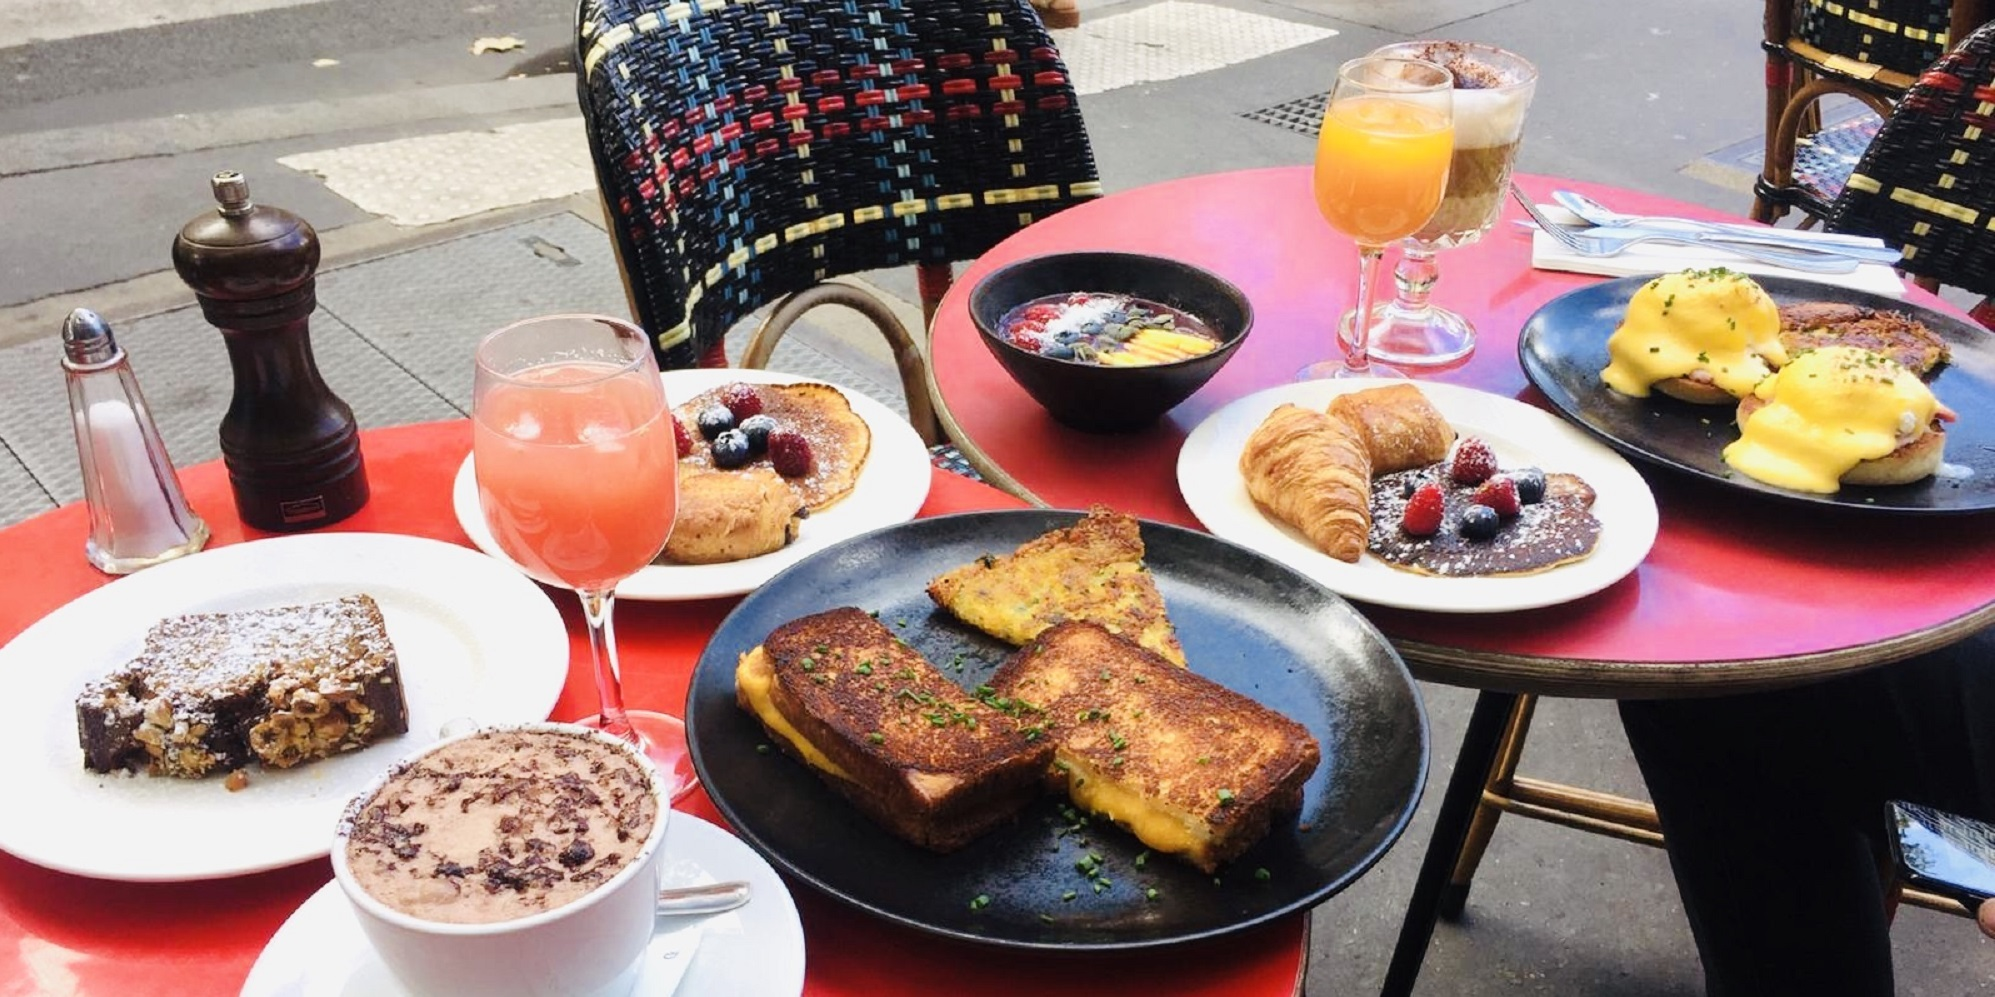 Brunch Quartier Général (75005 Paris)